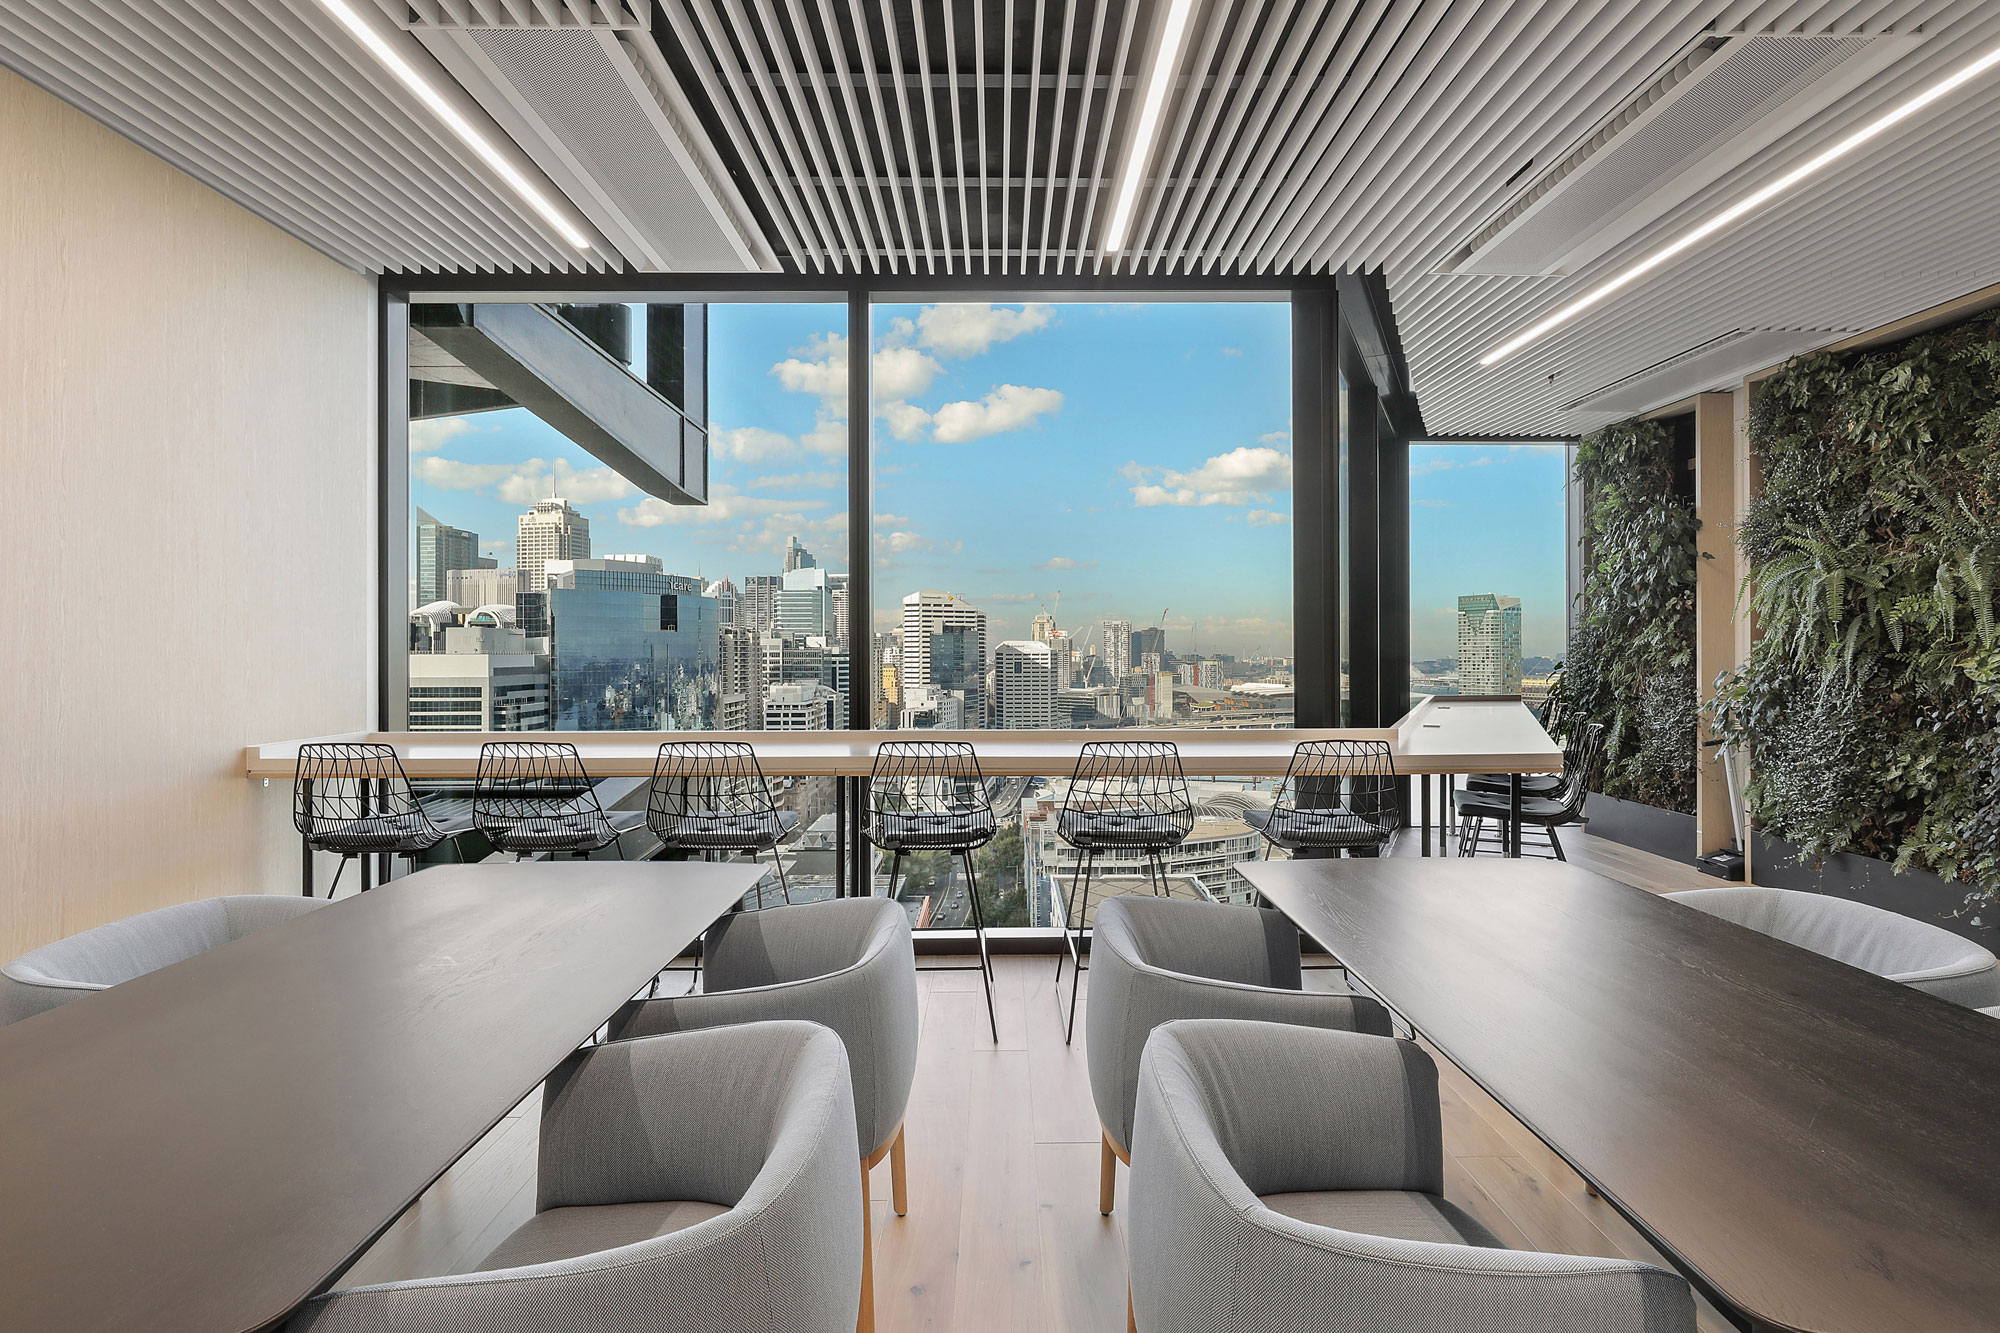 Cmc markets l20 3 international towers barangaroo high coffee area 2000